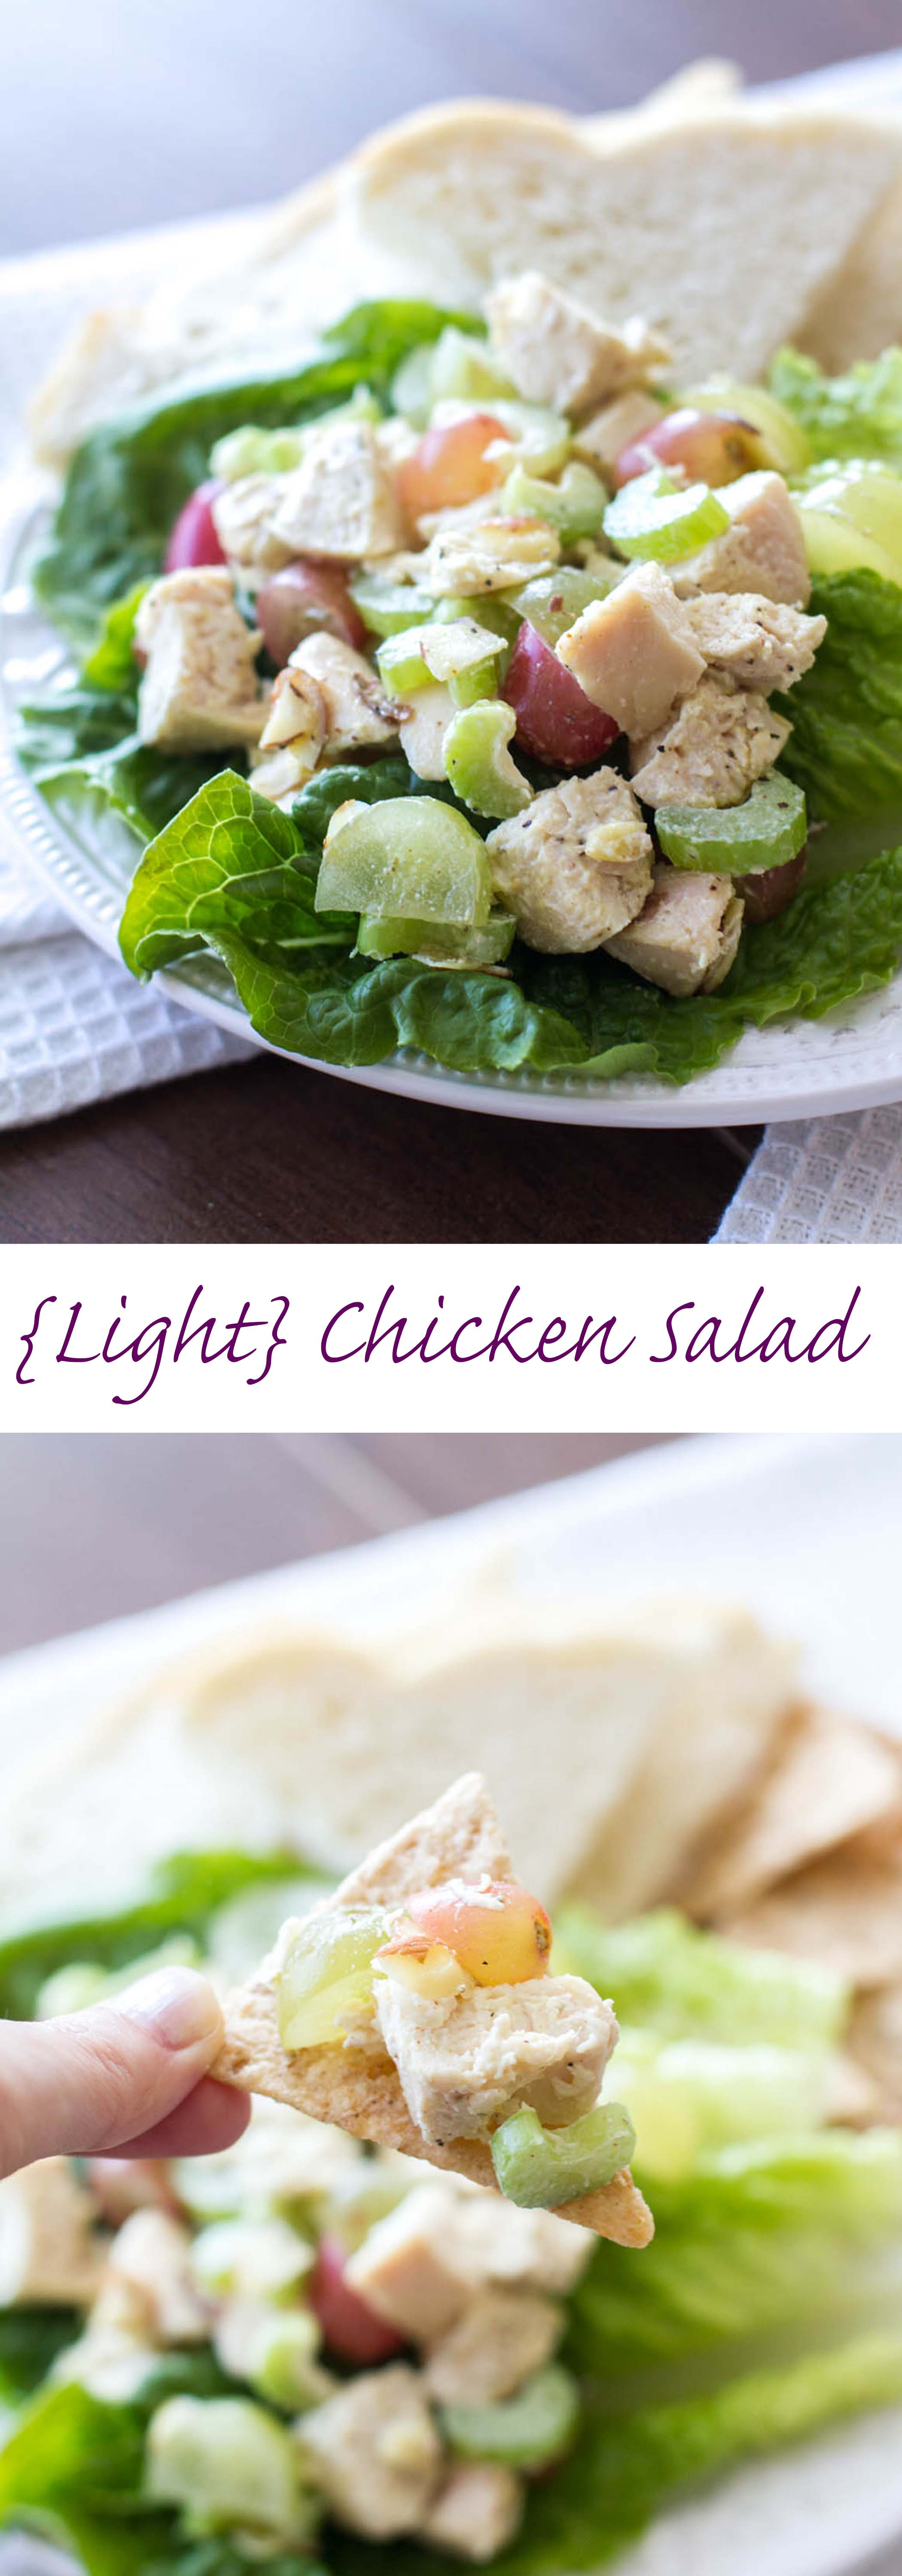 Lovely Light And Healthy Chicken Salad Recipe ~ This Quick And Easy Chicken Salad  Recipe Is Low